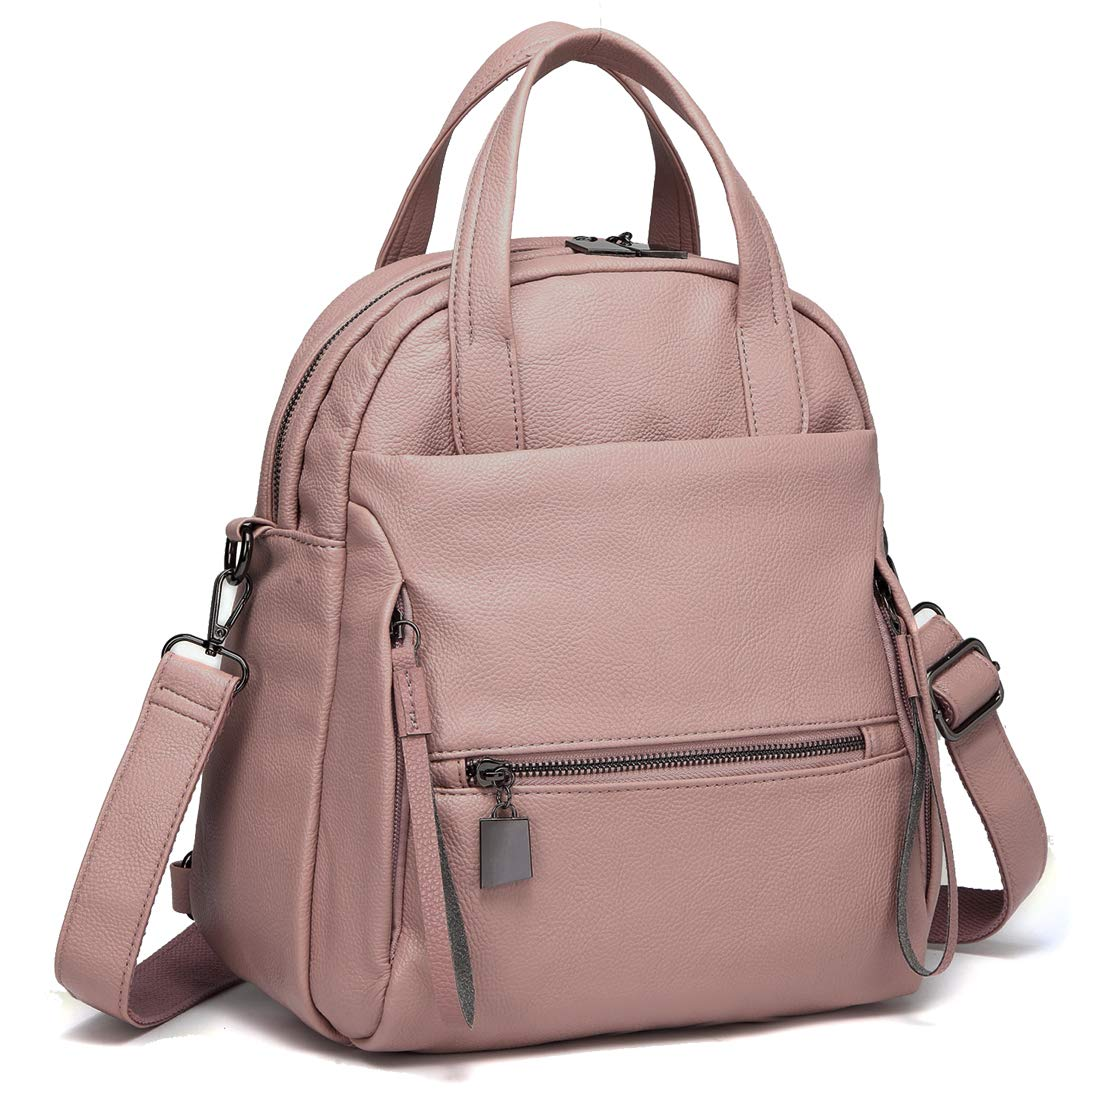 Kasqo Backpack Purse, Women Convertible Faux Leather Ladies Shoulder Bag Pink